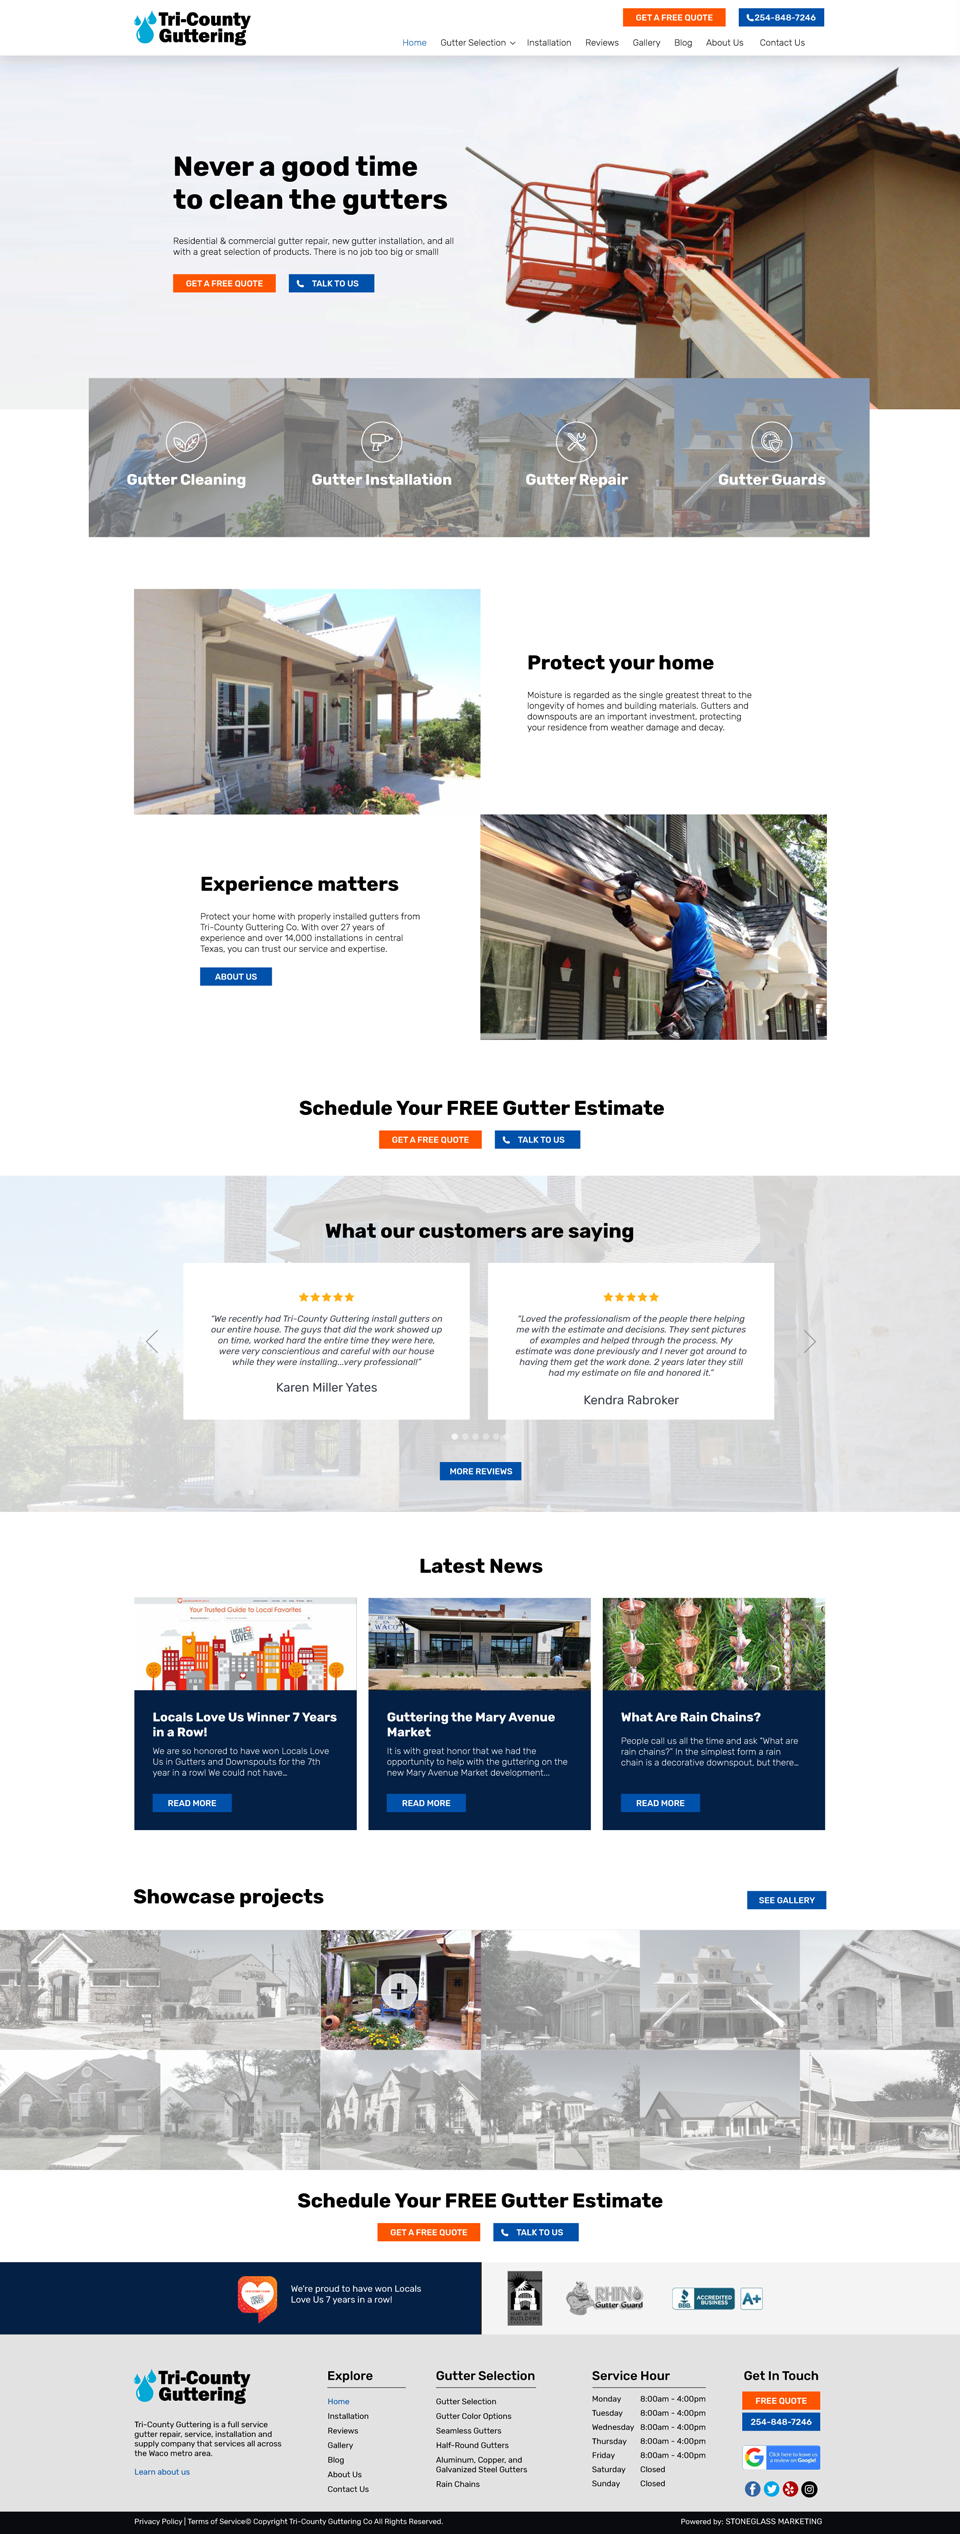 Website design for Construction Business